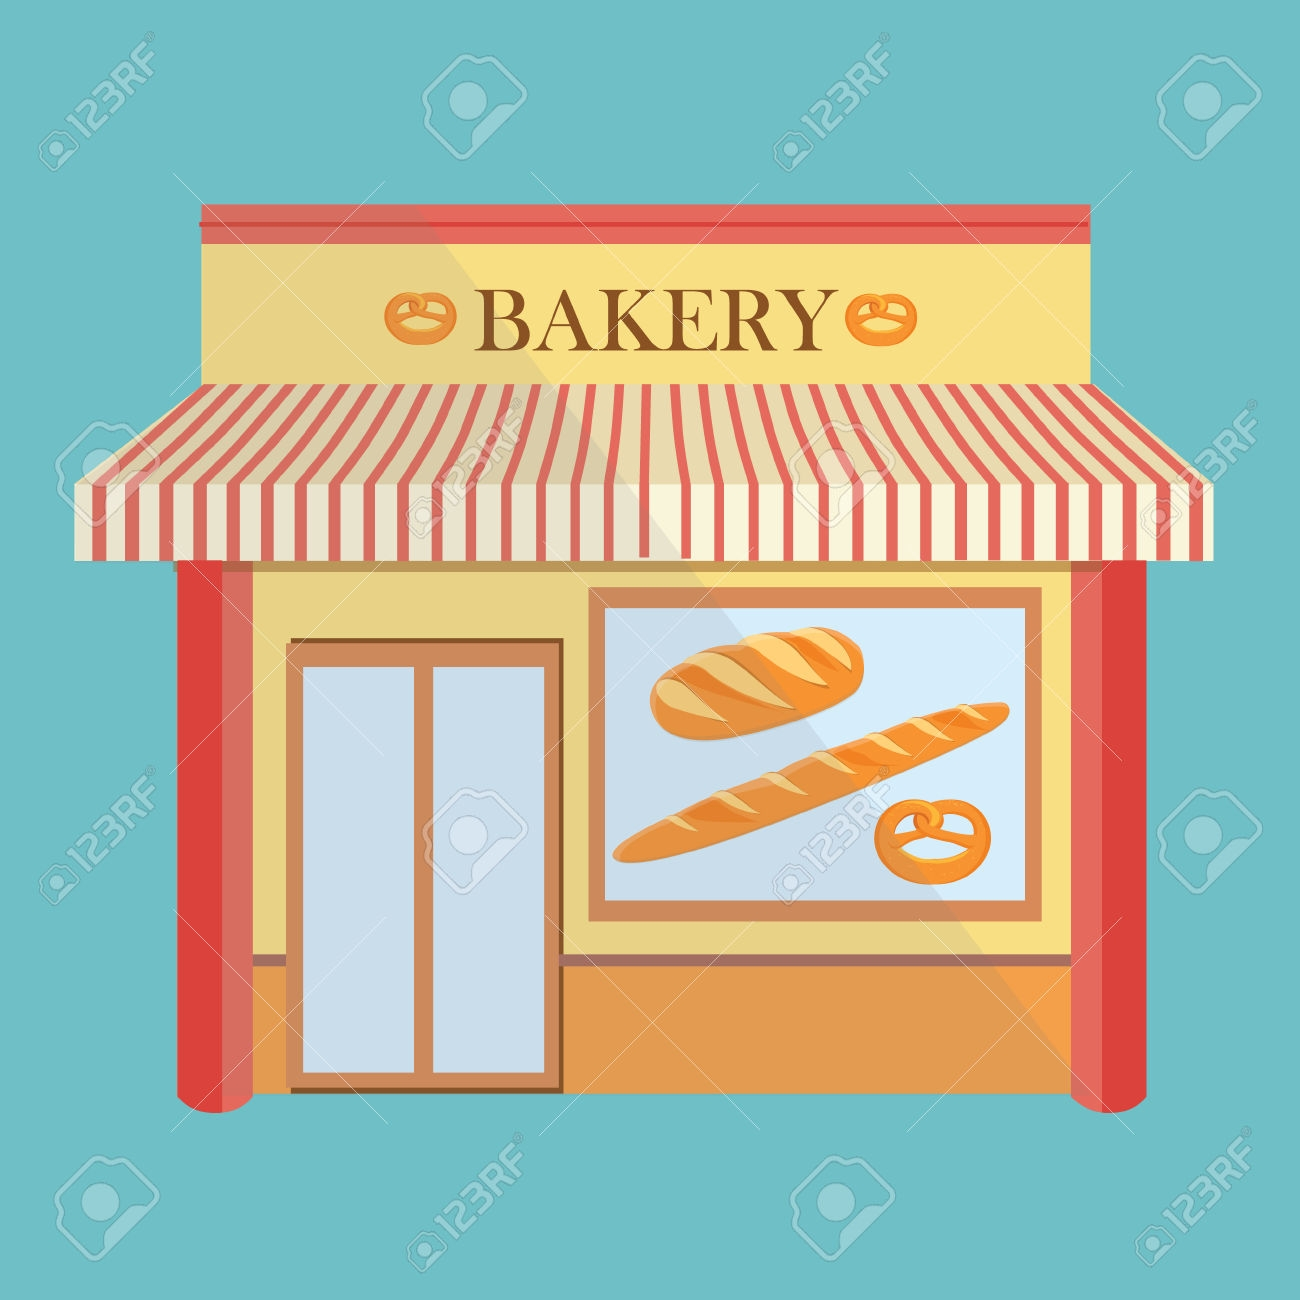 Bakery clipart. Awesome gallery digital collection